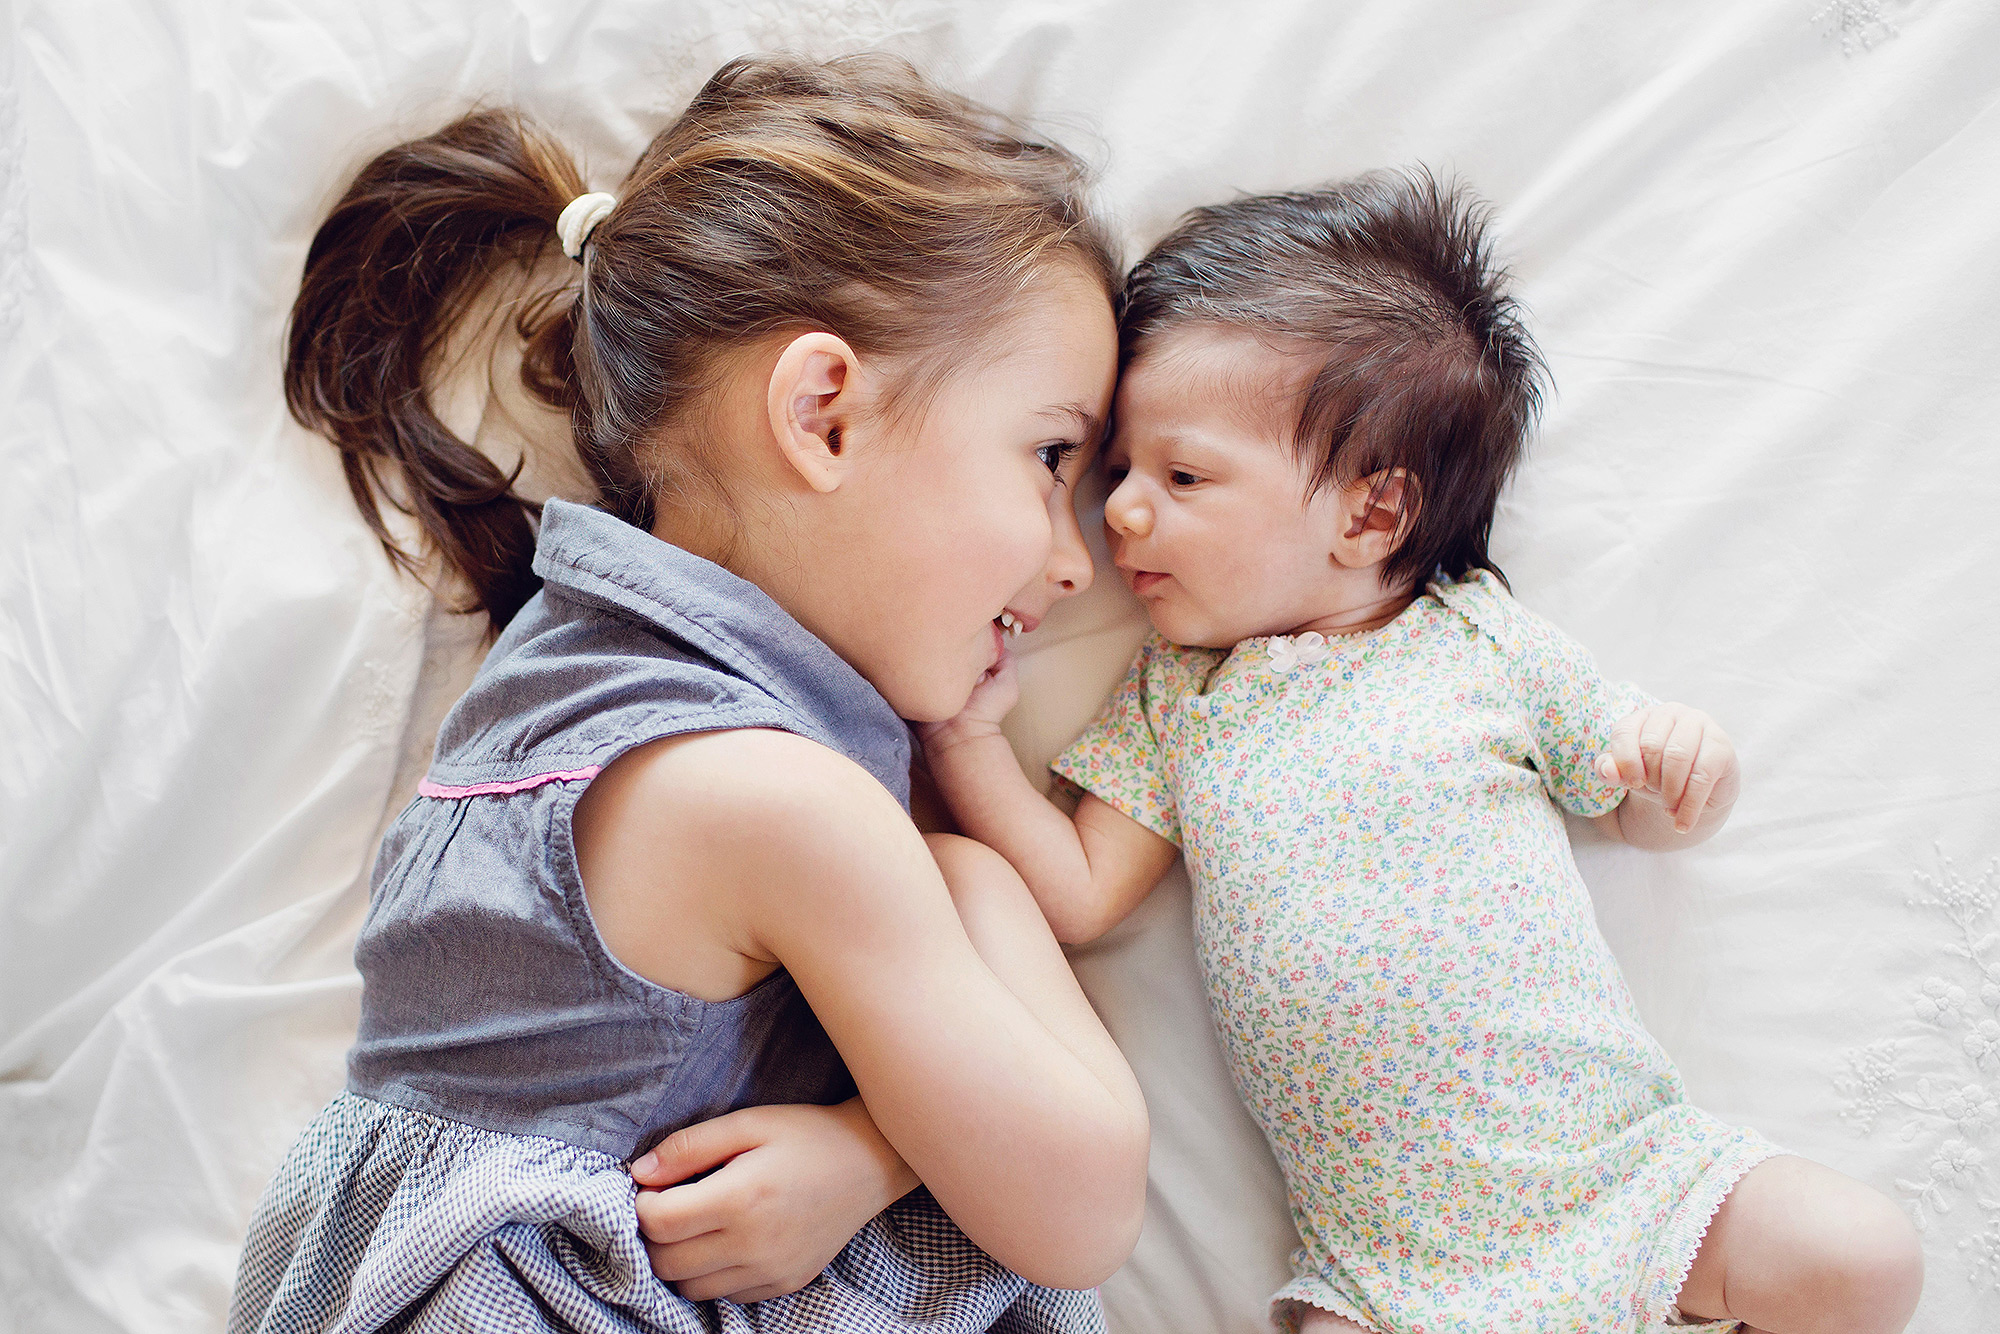 High angle view of girl with ponytail and newborn baby girl lying on a bed.